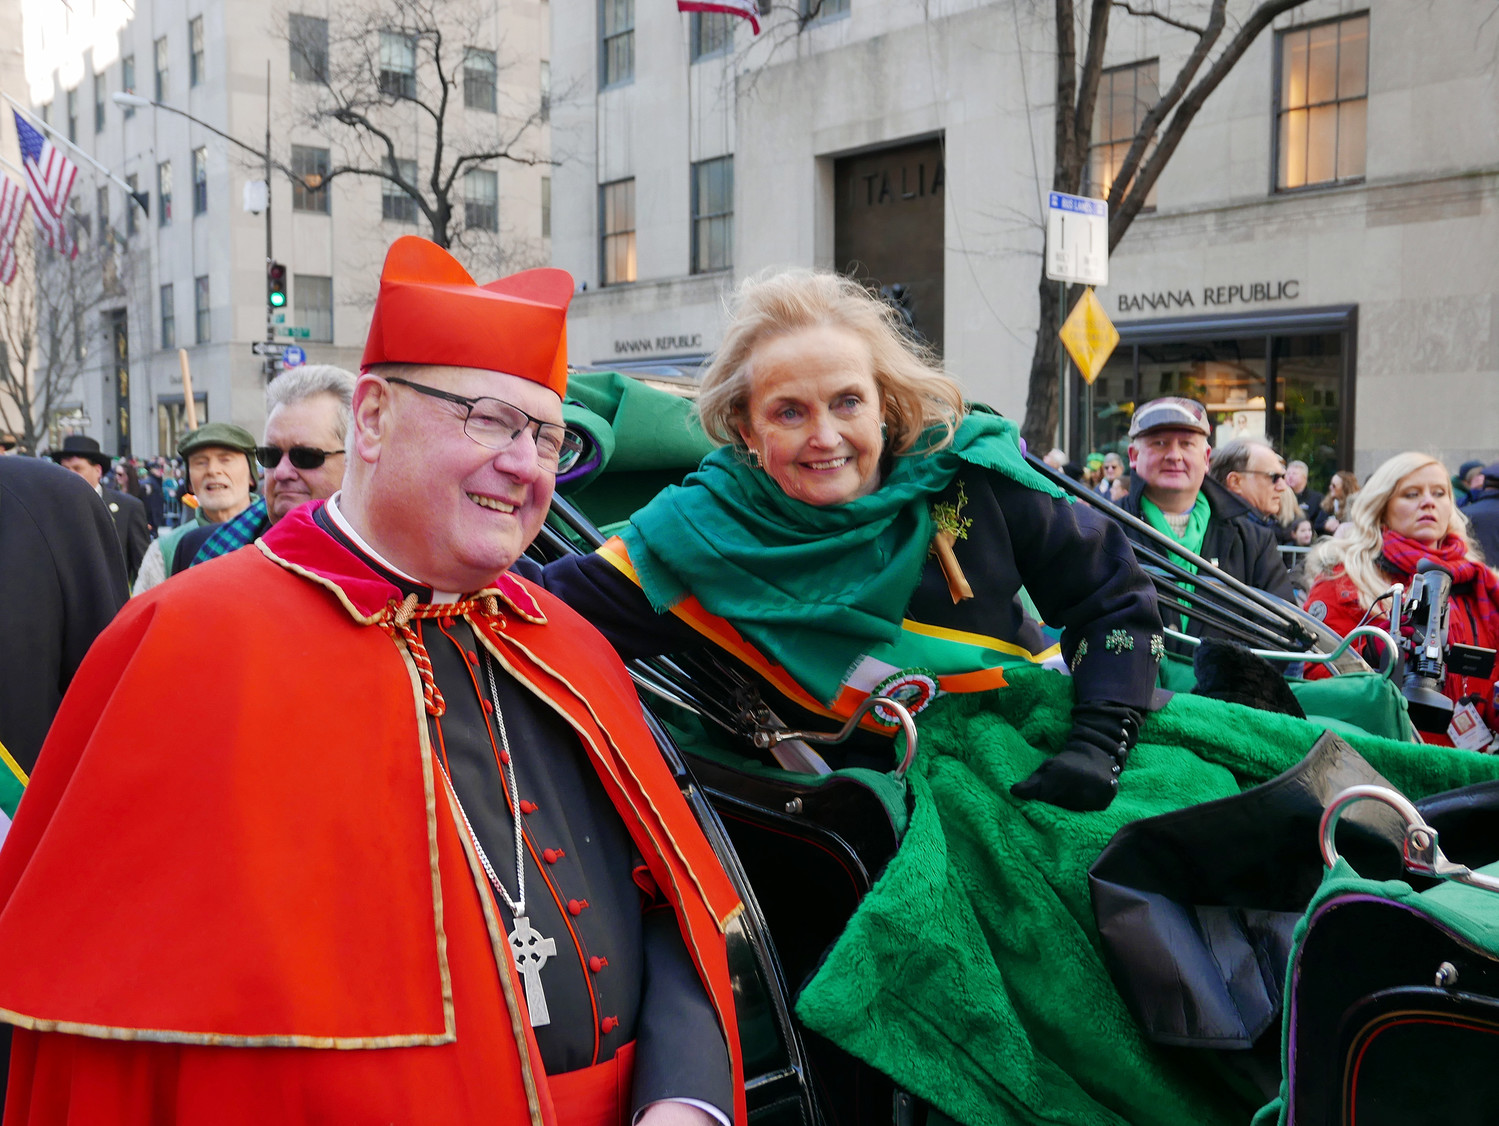 Cardinal Dolan greets Loretta Brennan Glucksman, the grand marshal of the 257th New York City St. Patrick's Day Parade, who led the March 17 march up Fifth Avenue while riding with her grandson, Liam Picco, 15, in their favorite hansom cab.